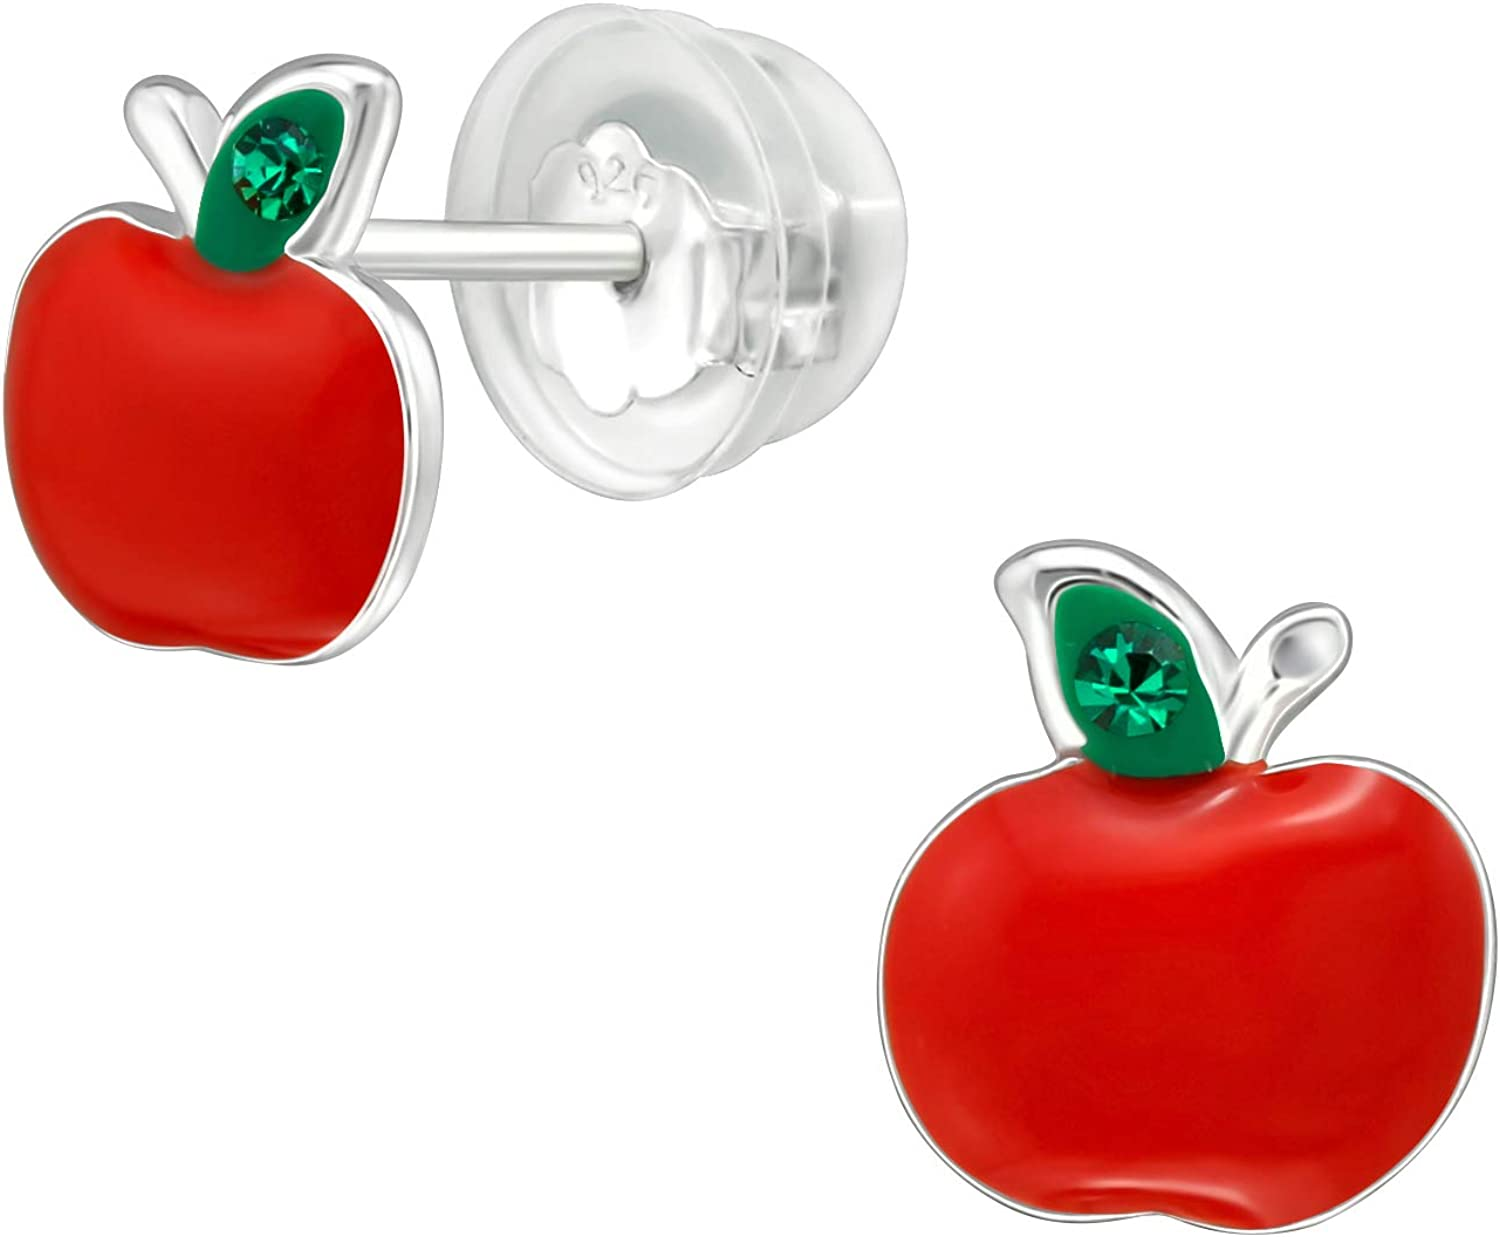 AUBE JEWELRY Hypoallergenic 925 Sterling Silver Snow White Red Apple Fruit Stud Earrings Adorned with Crystal with Silicone Coated Push Backs for Girls and Women